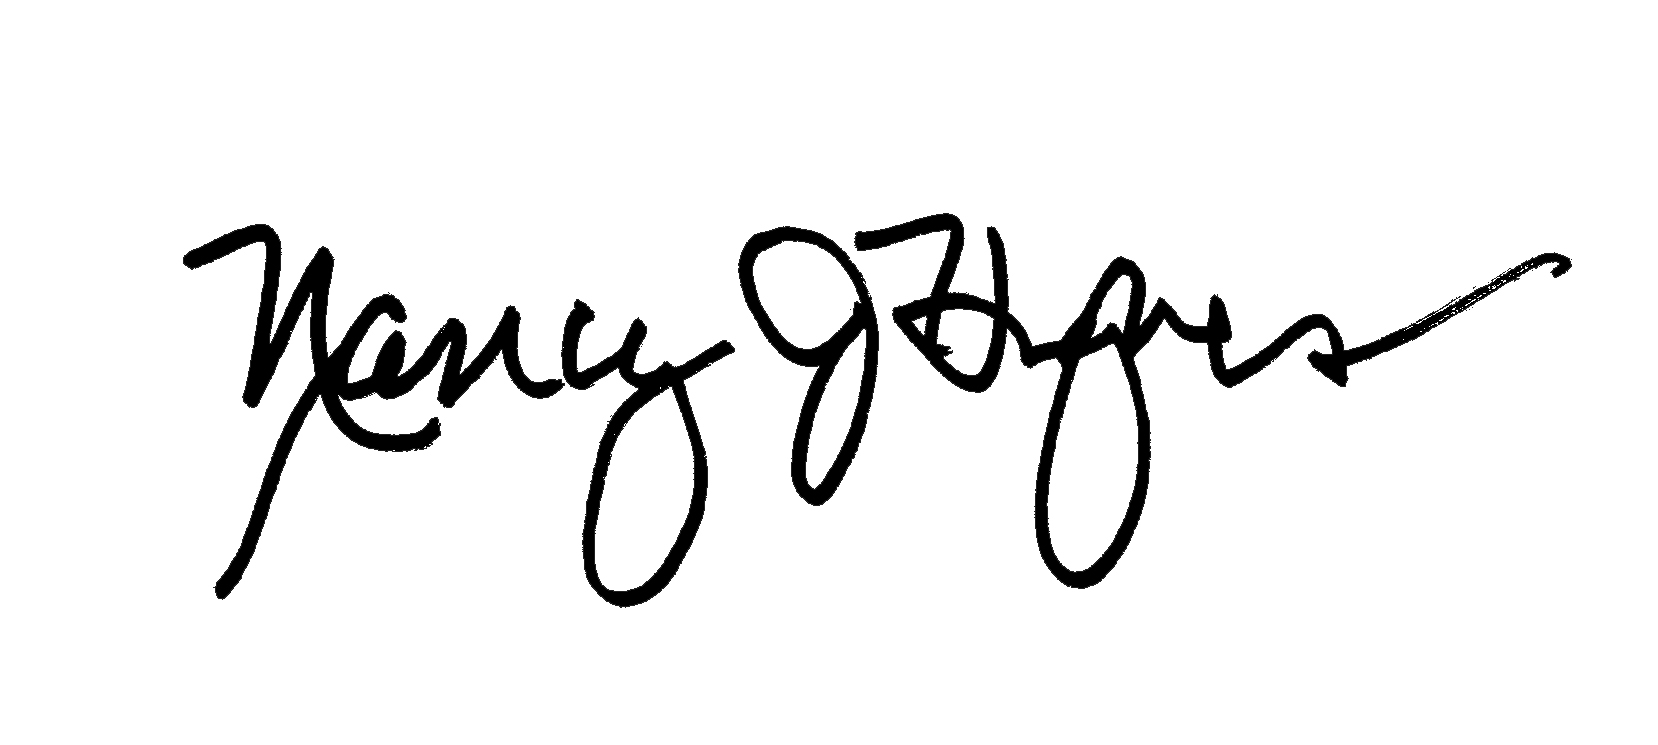 Nancy Hughes signature